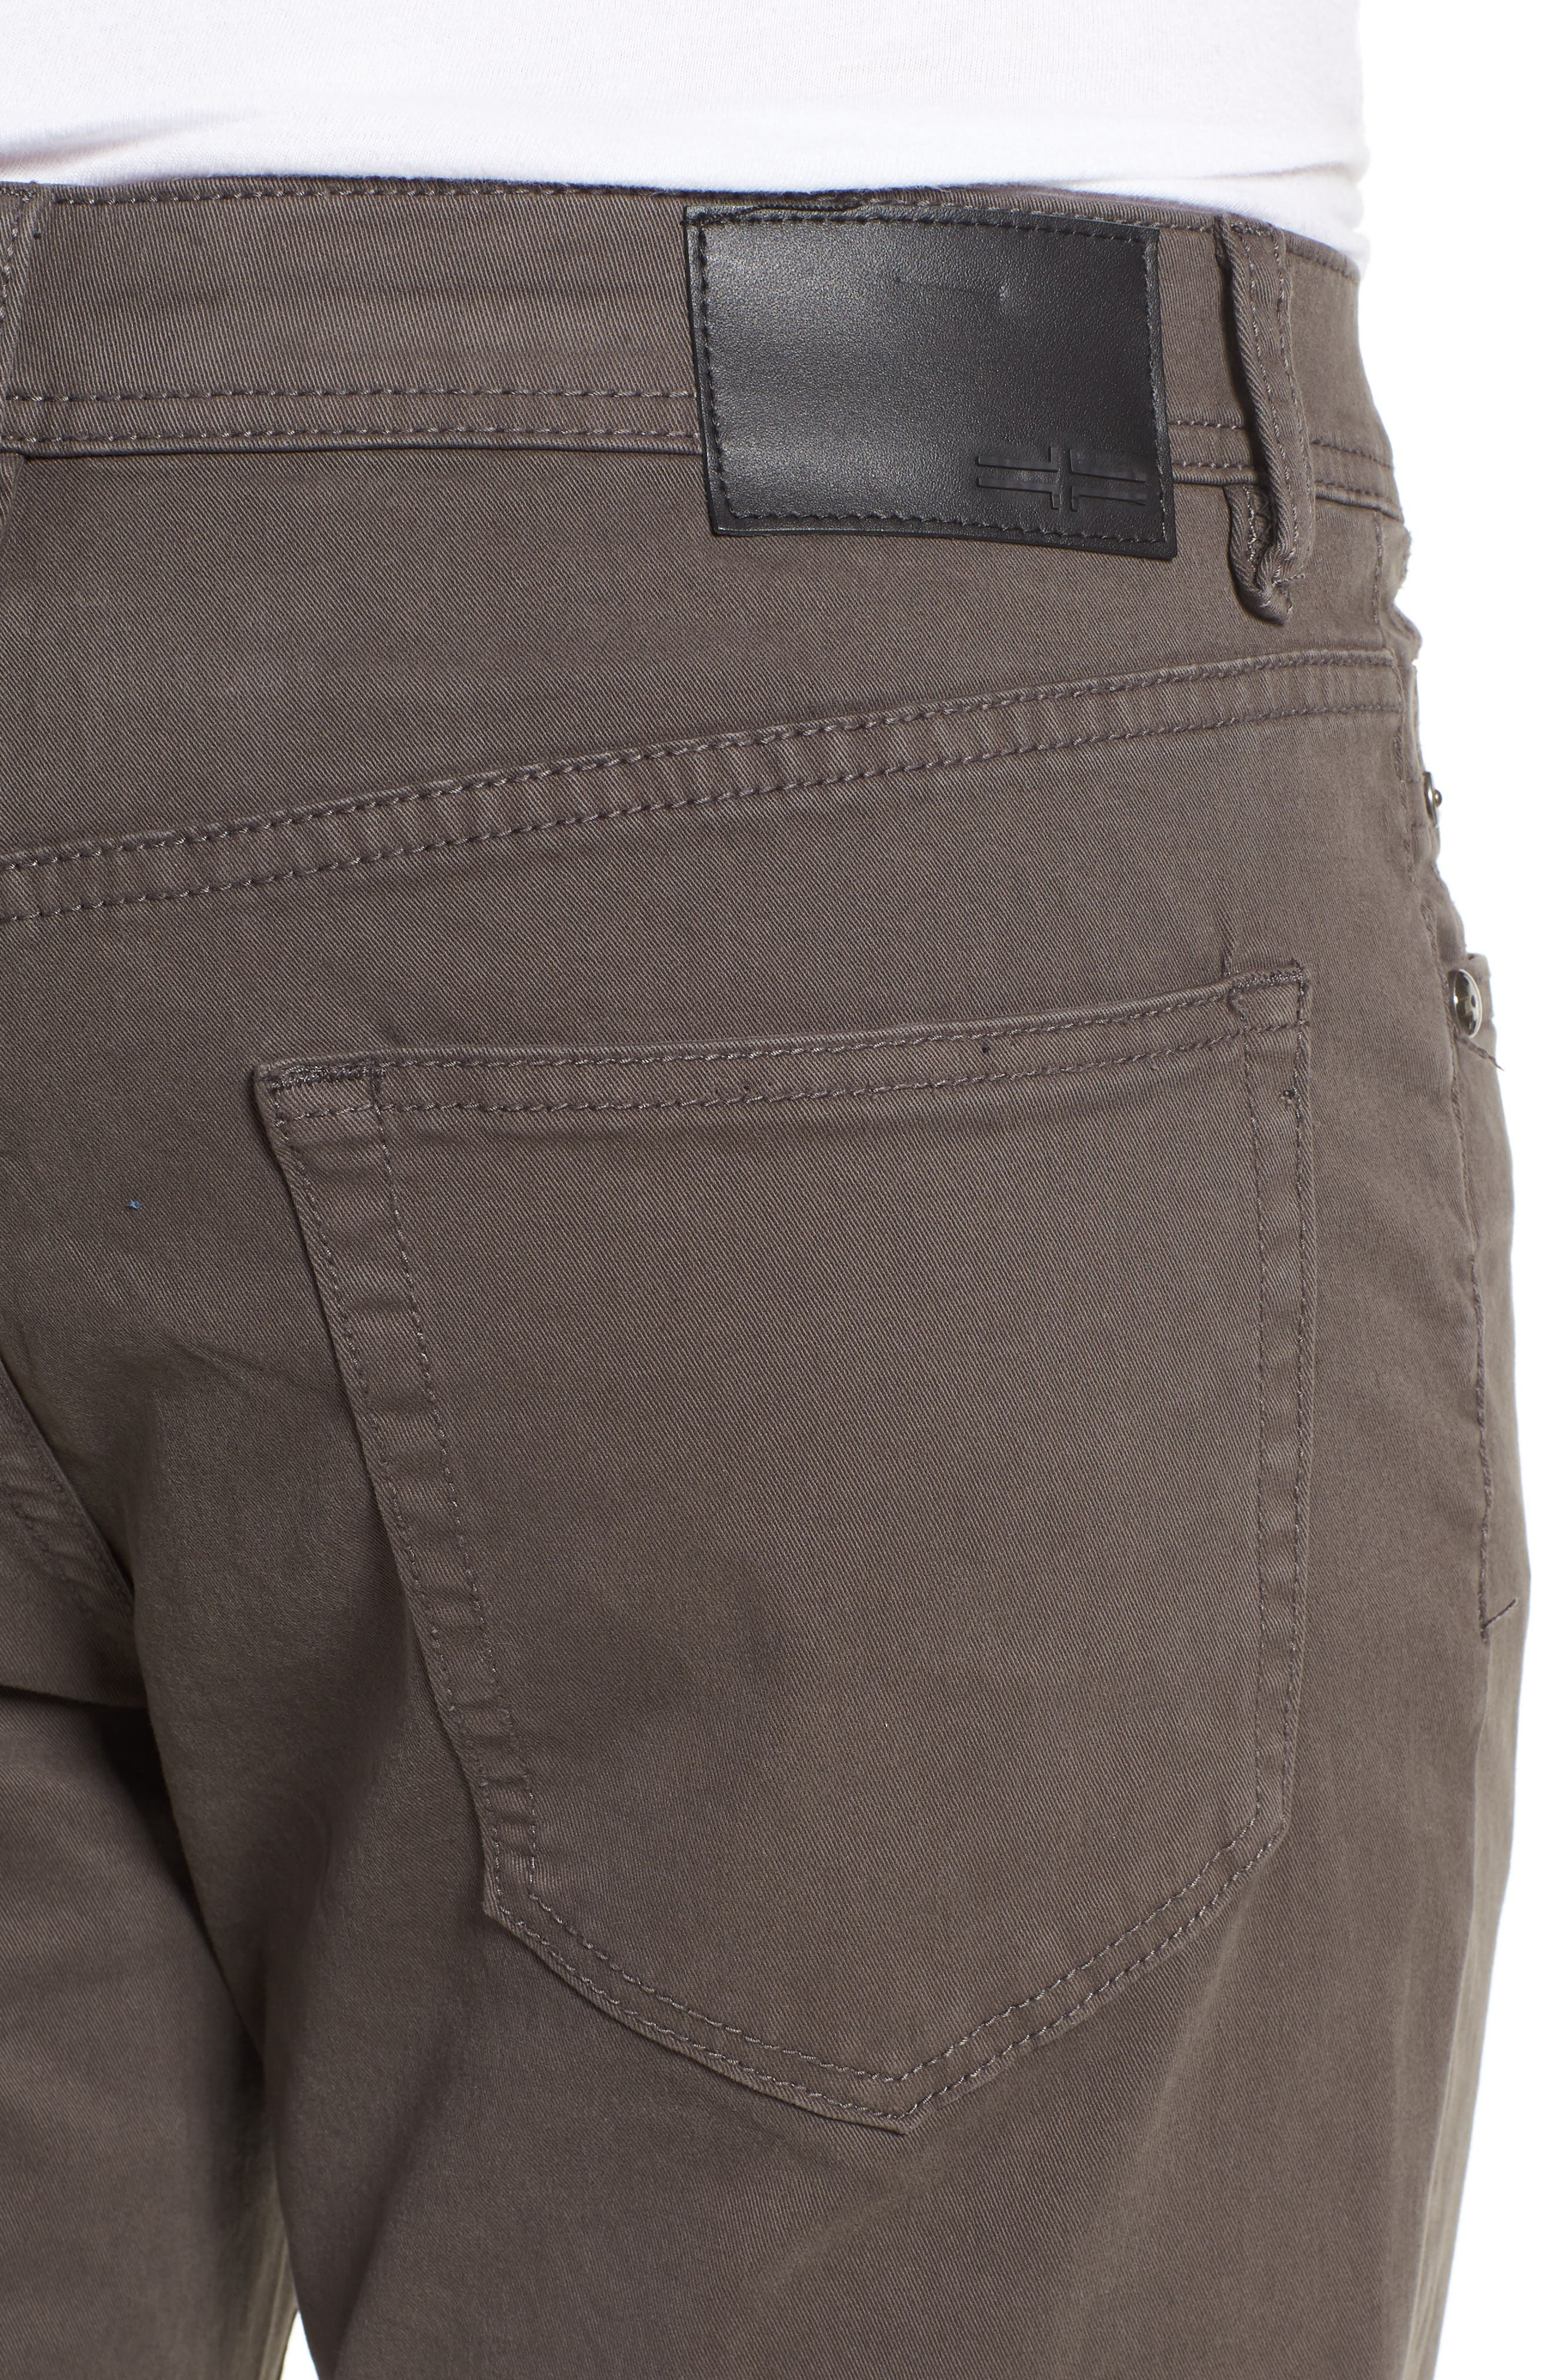 Jeans Co. Regent Relaxed Fit Jeans,                             Alternate thumbnail 4, color,                             Deep Earth